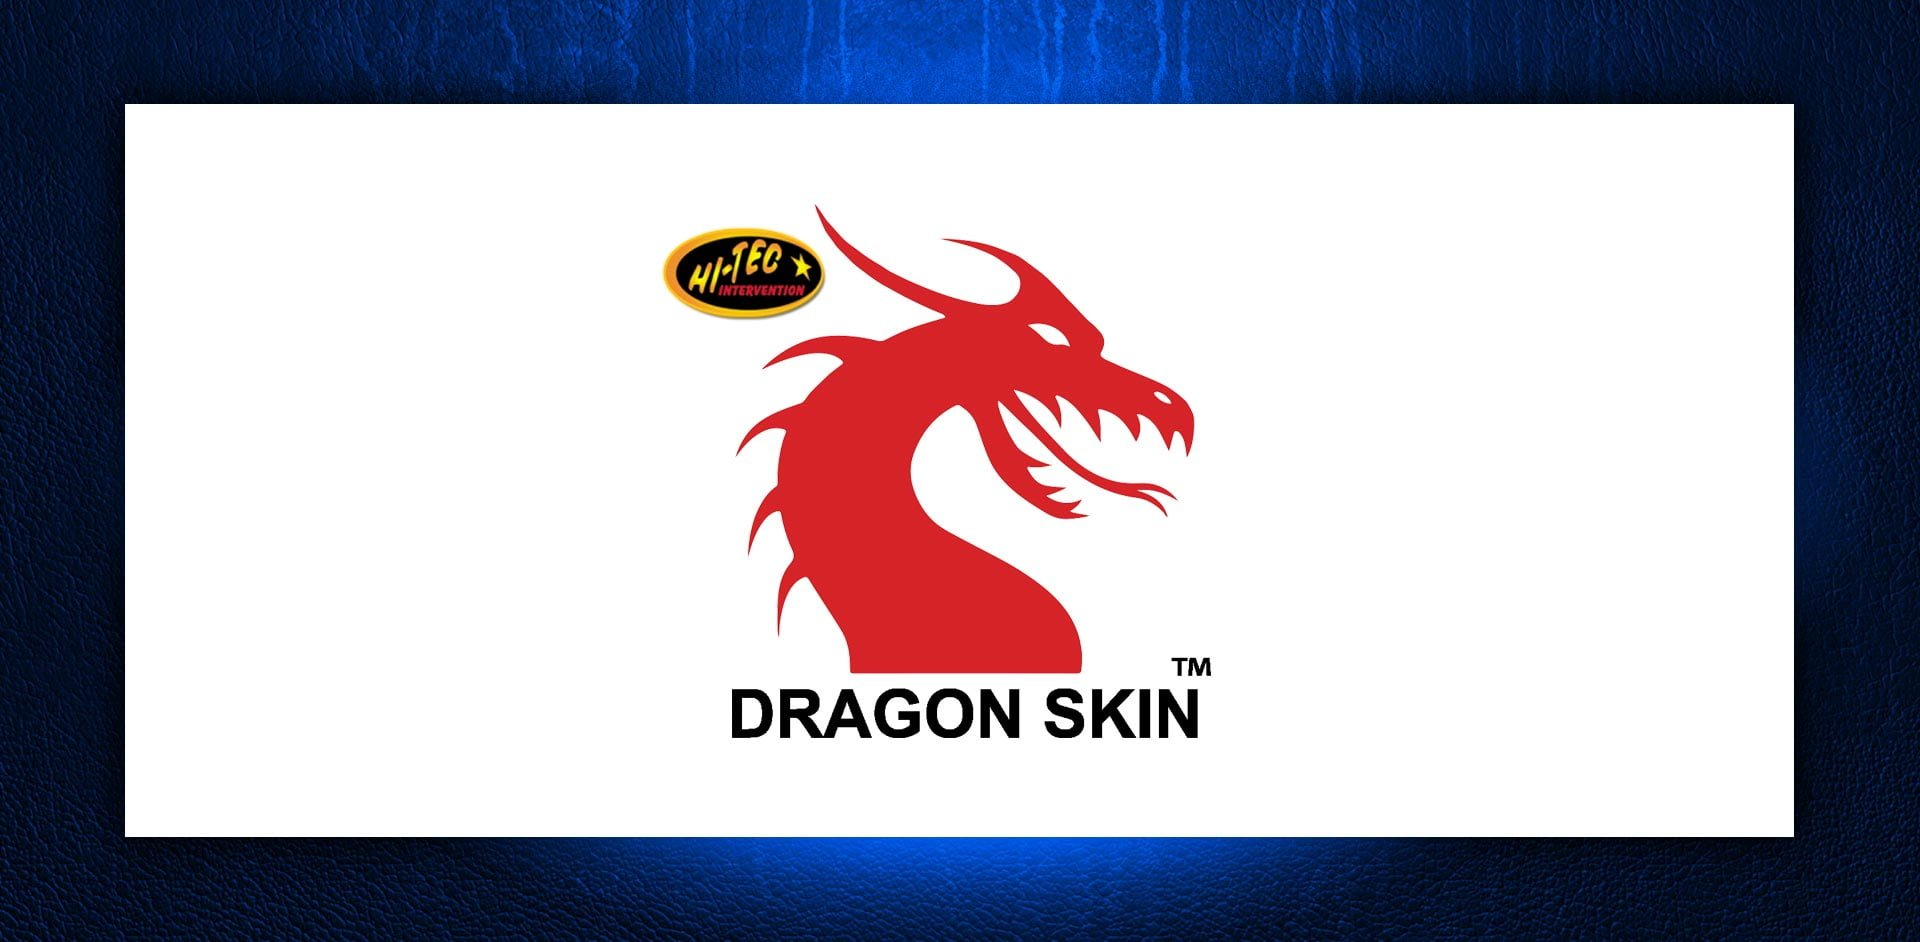 Hi-Tec Intervention Inc (DRAGON SKIN)